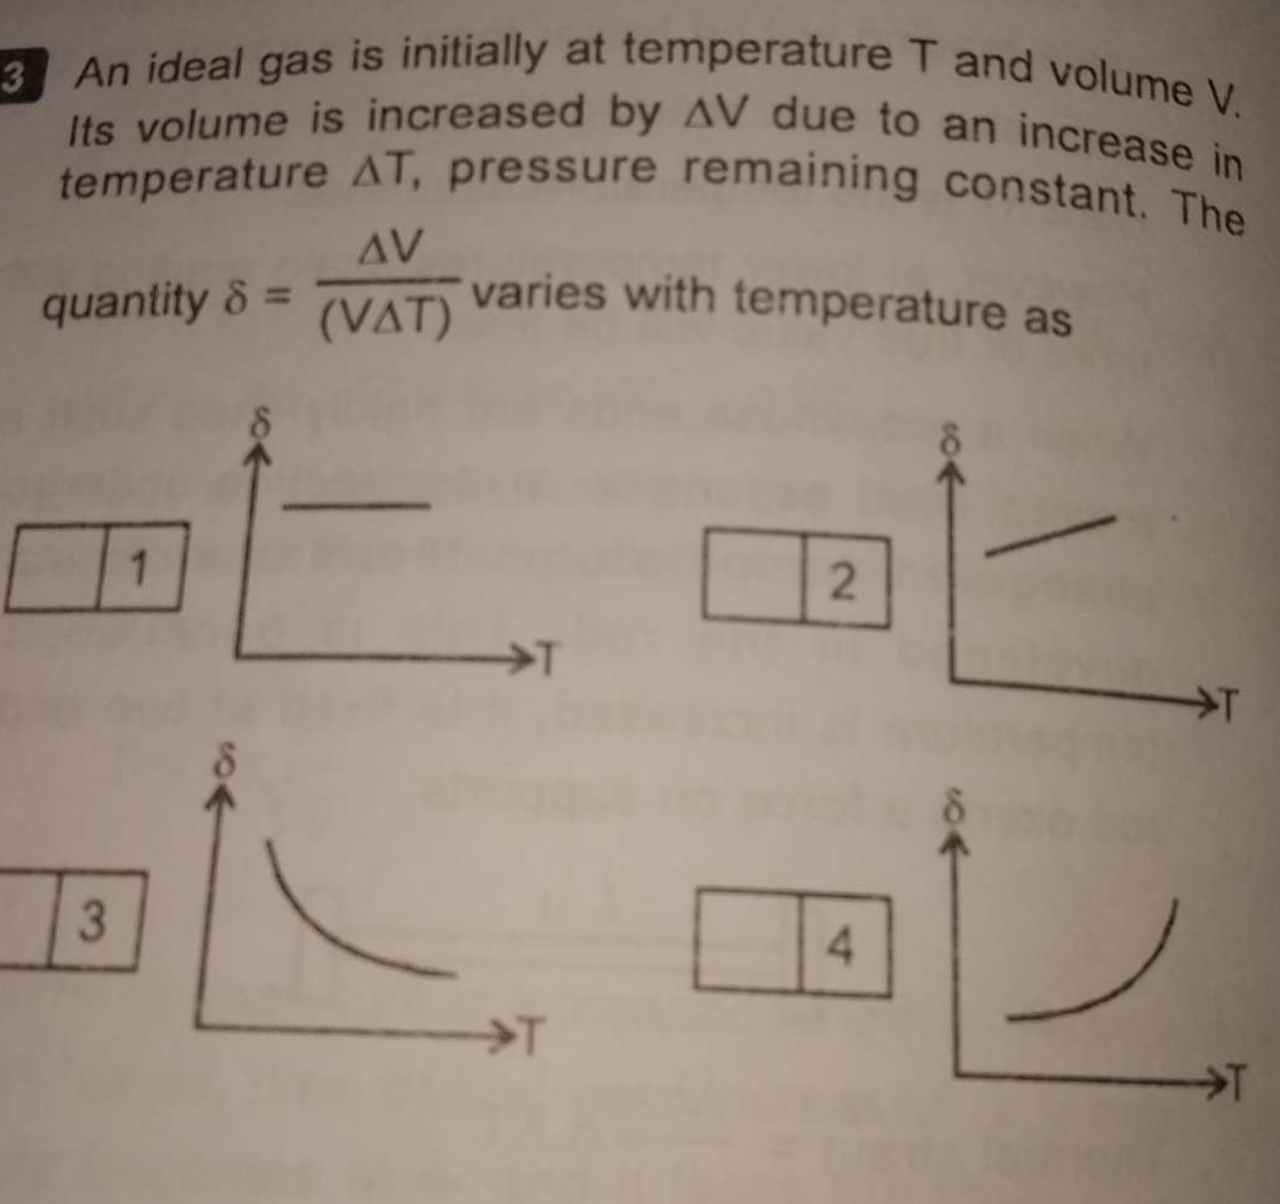 An ideal gas is initially at temperature T and volume V. Its volume is increased by ΔV due to an increase in temperature △ T, pressure remaining constant. The quanti